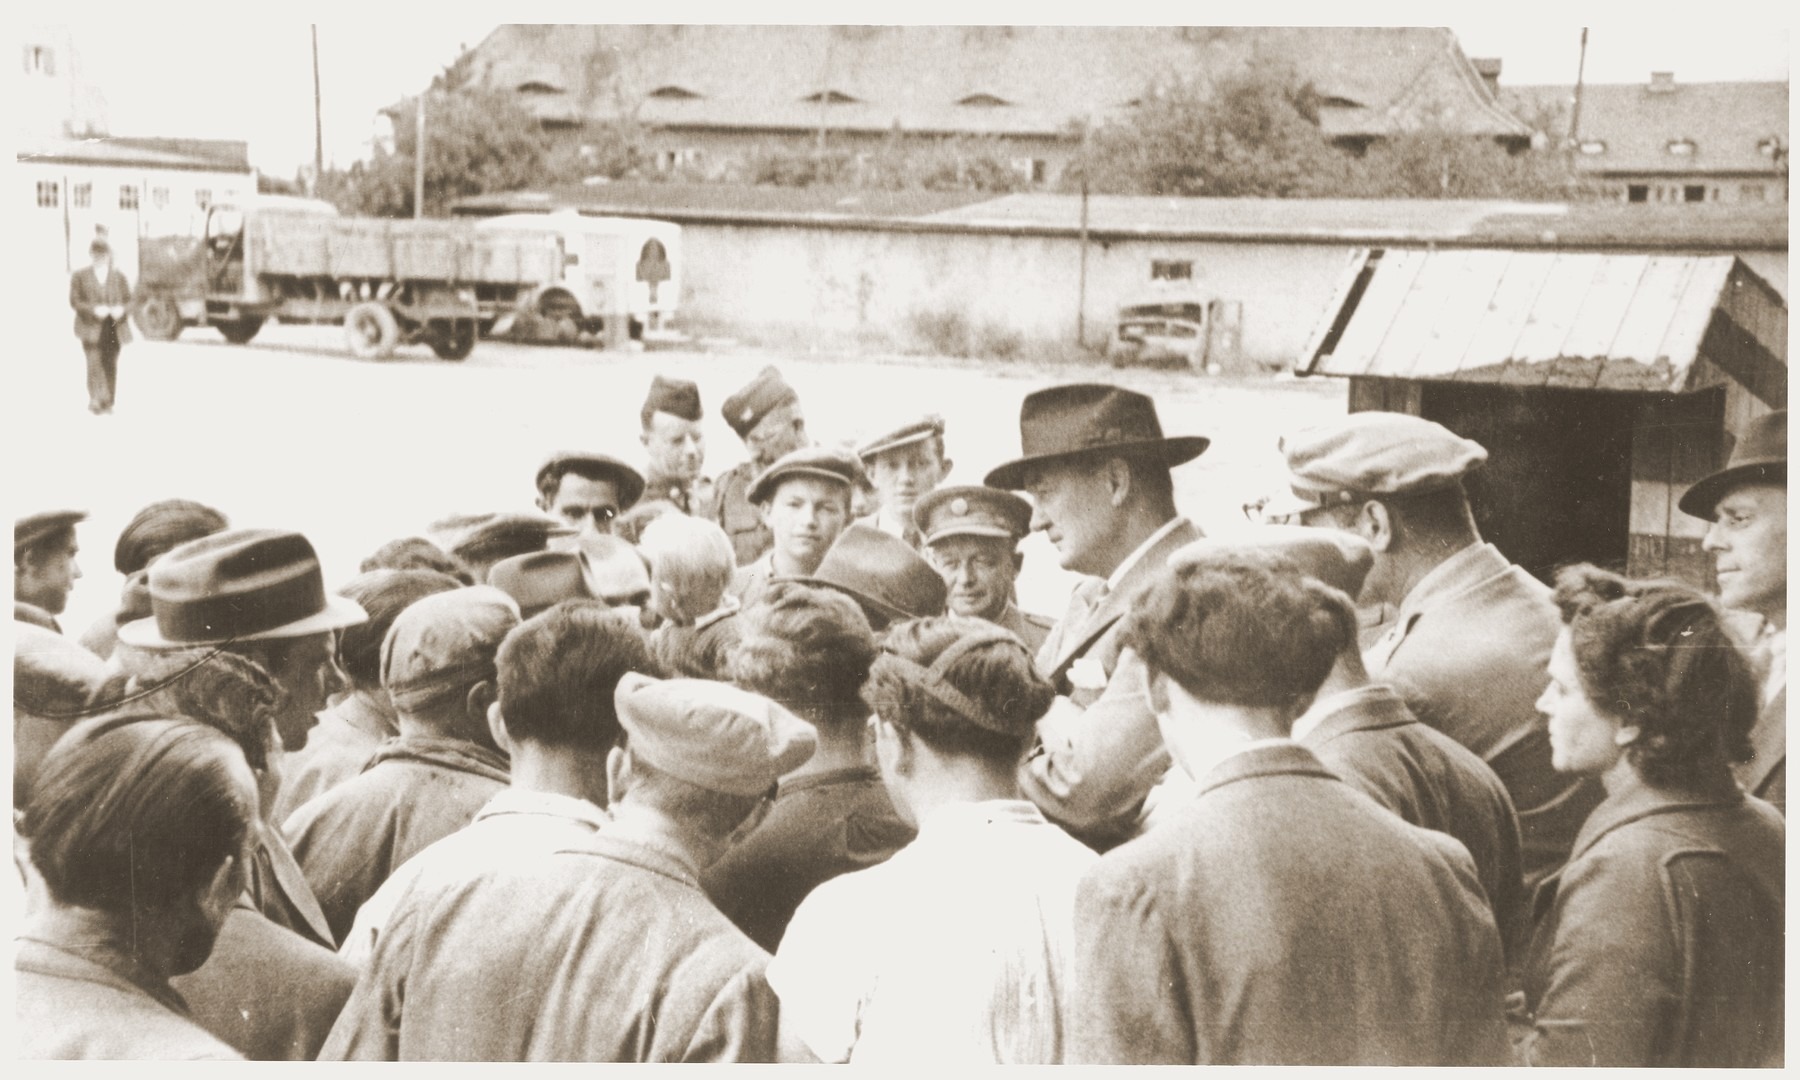 Members of the Kibbutz Nili hachshara (Zionist collective) in Pleikershof, Germany crowd around an American official and his entourage during a tour of the settlement.